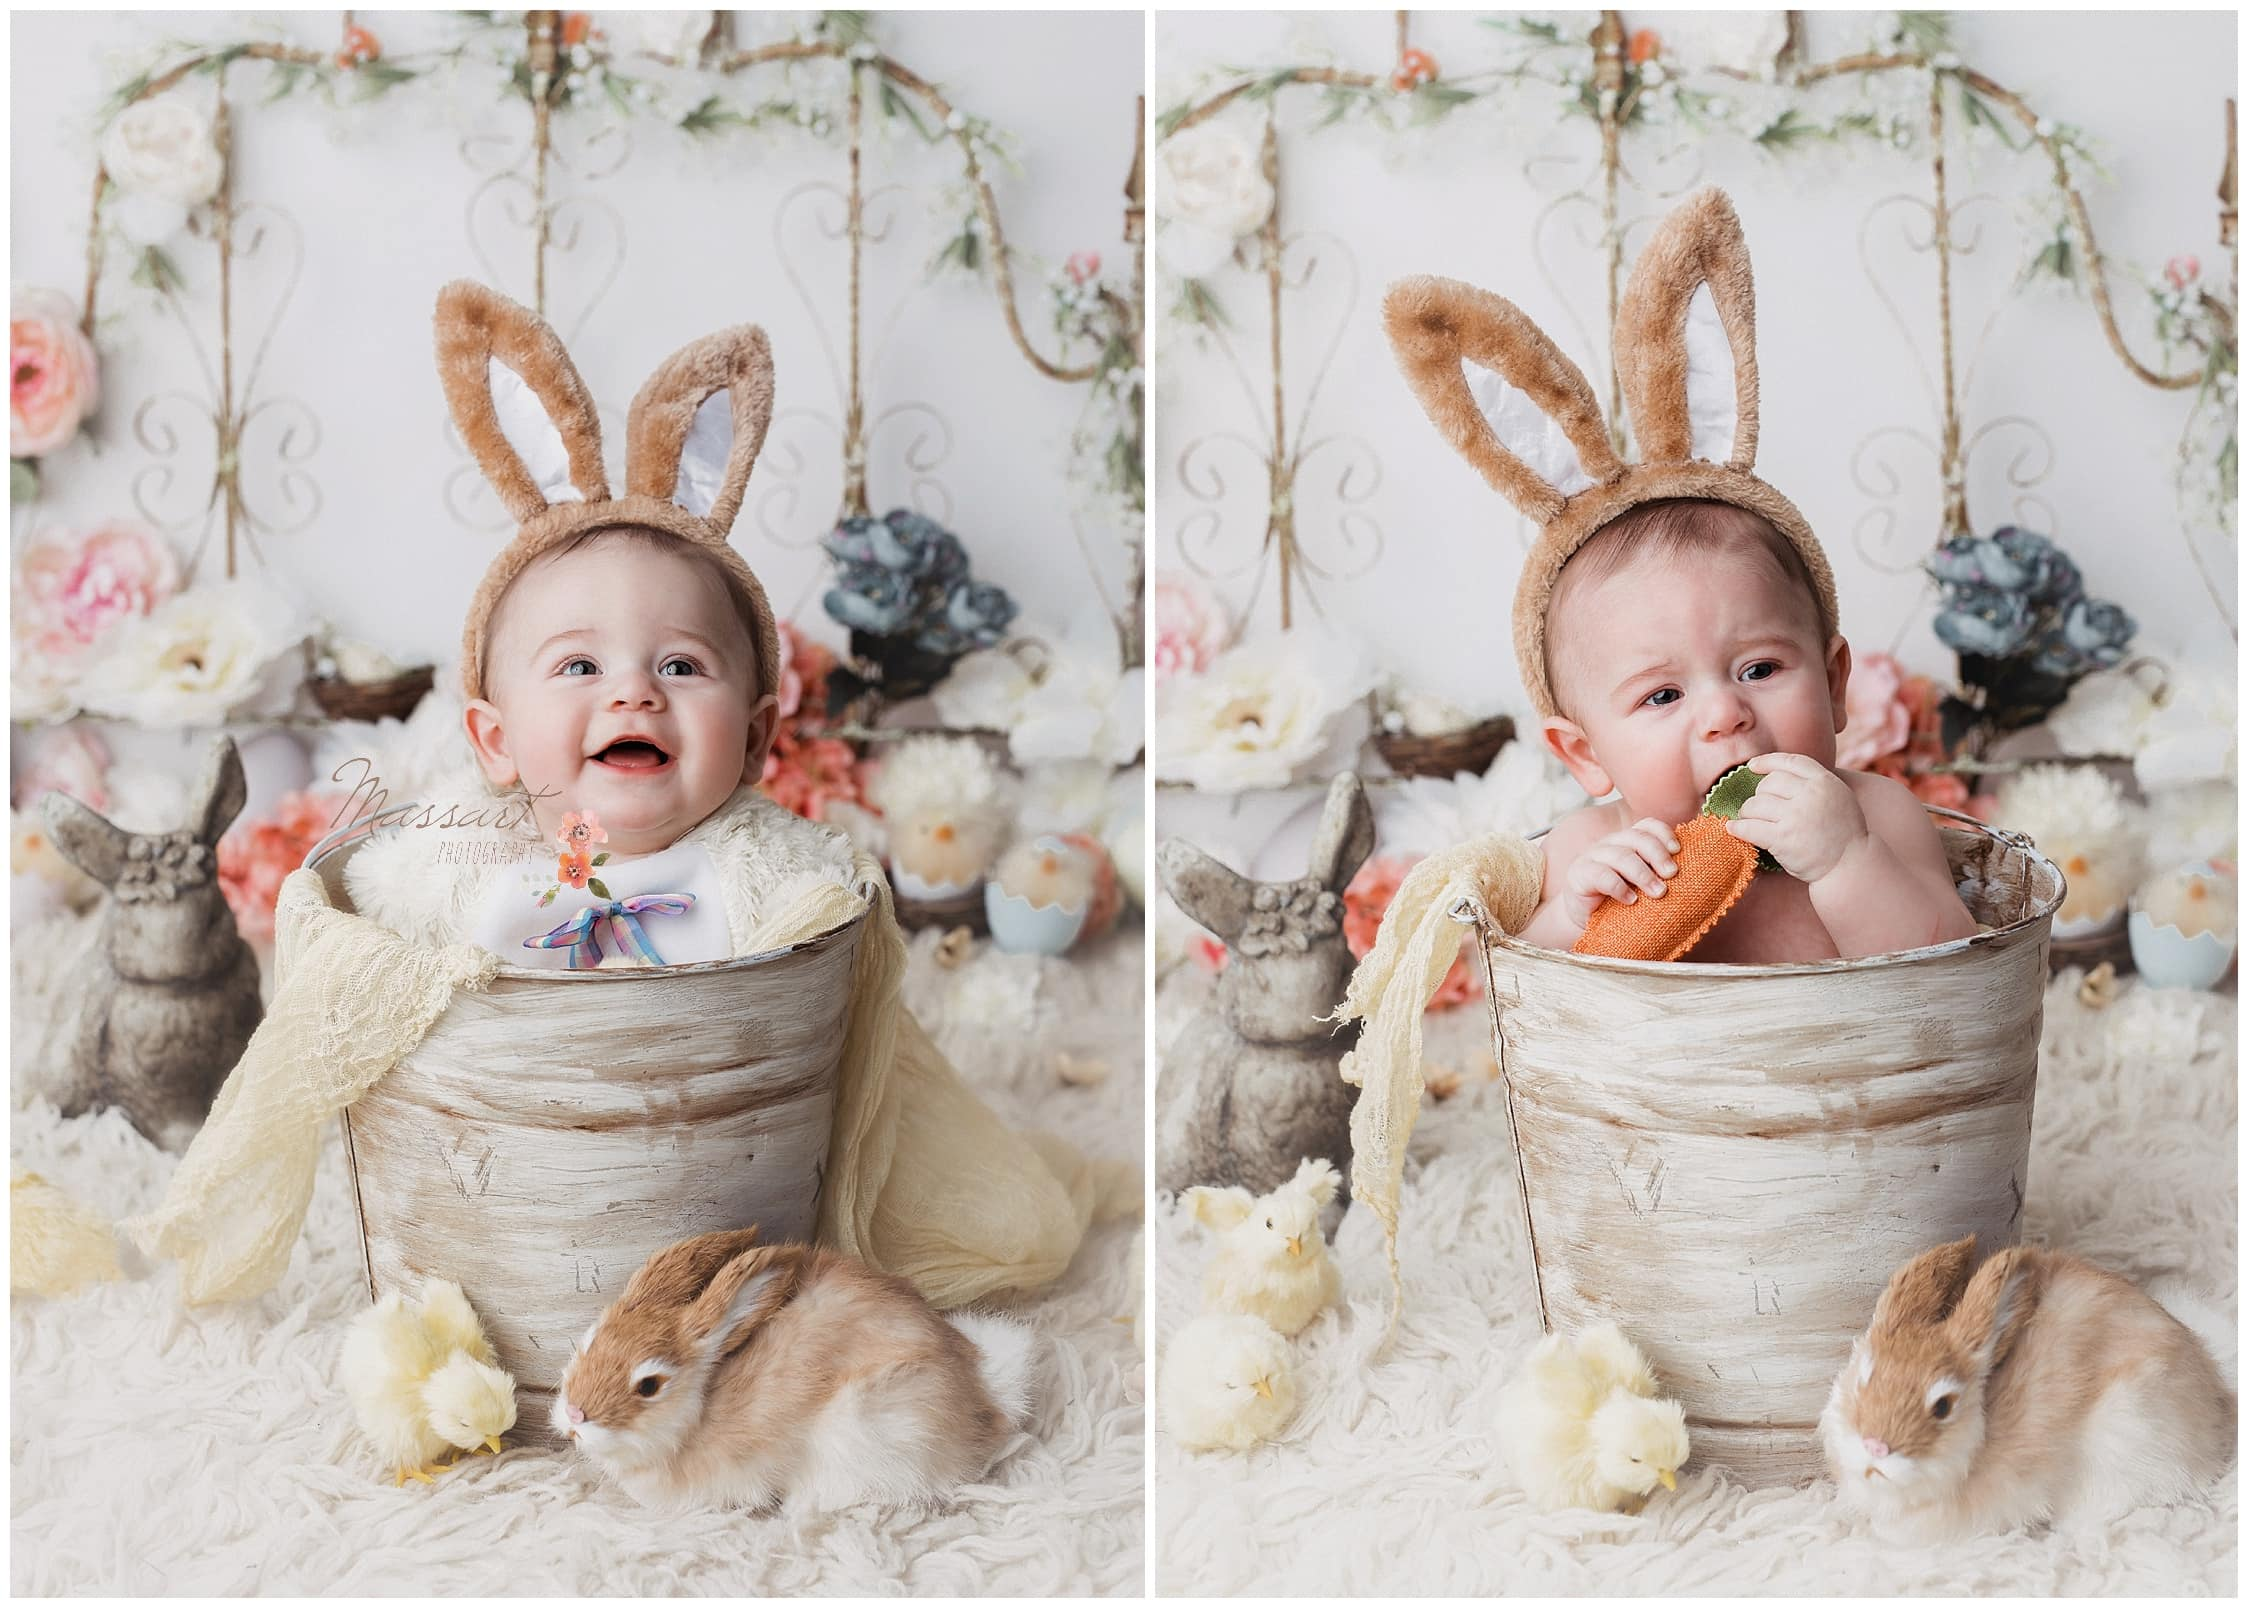 Baby in a bucket pretends to be a bunny for Easter mini sessions in rhode island by Massart Photography